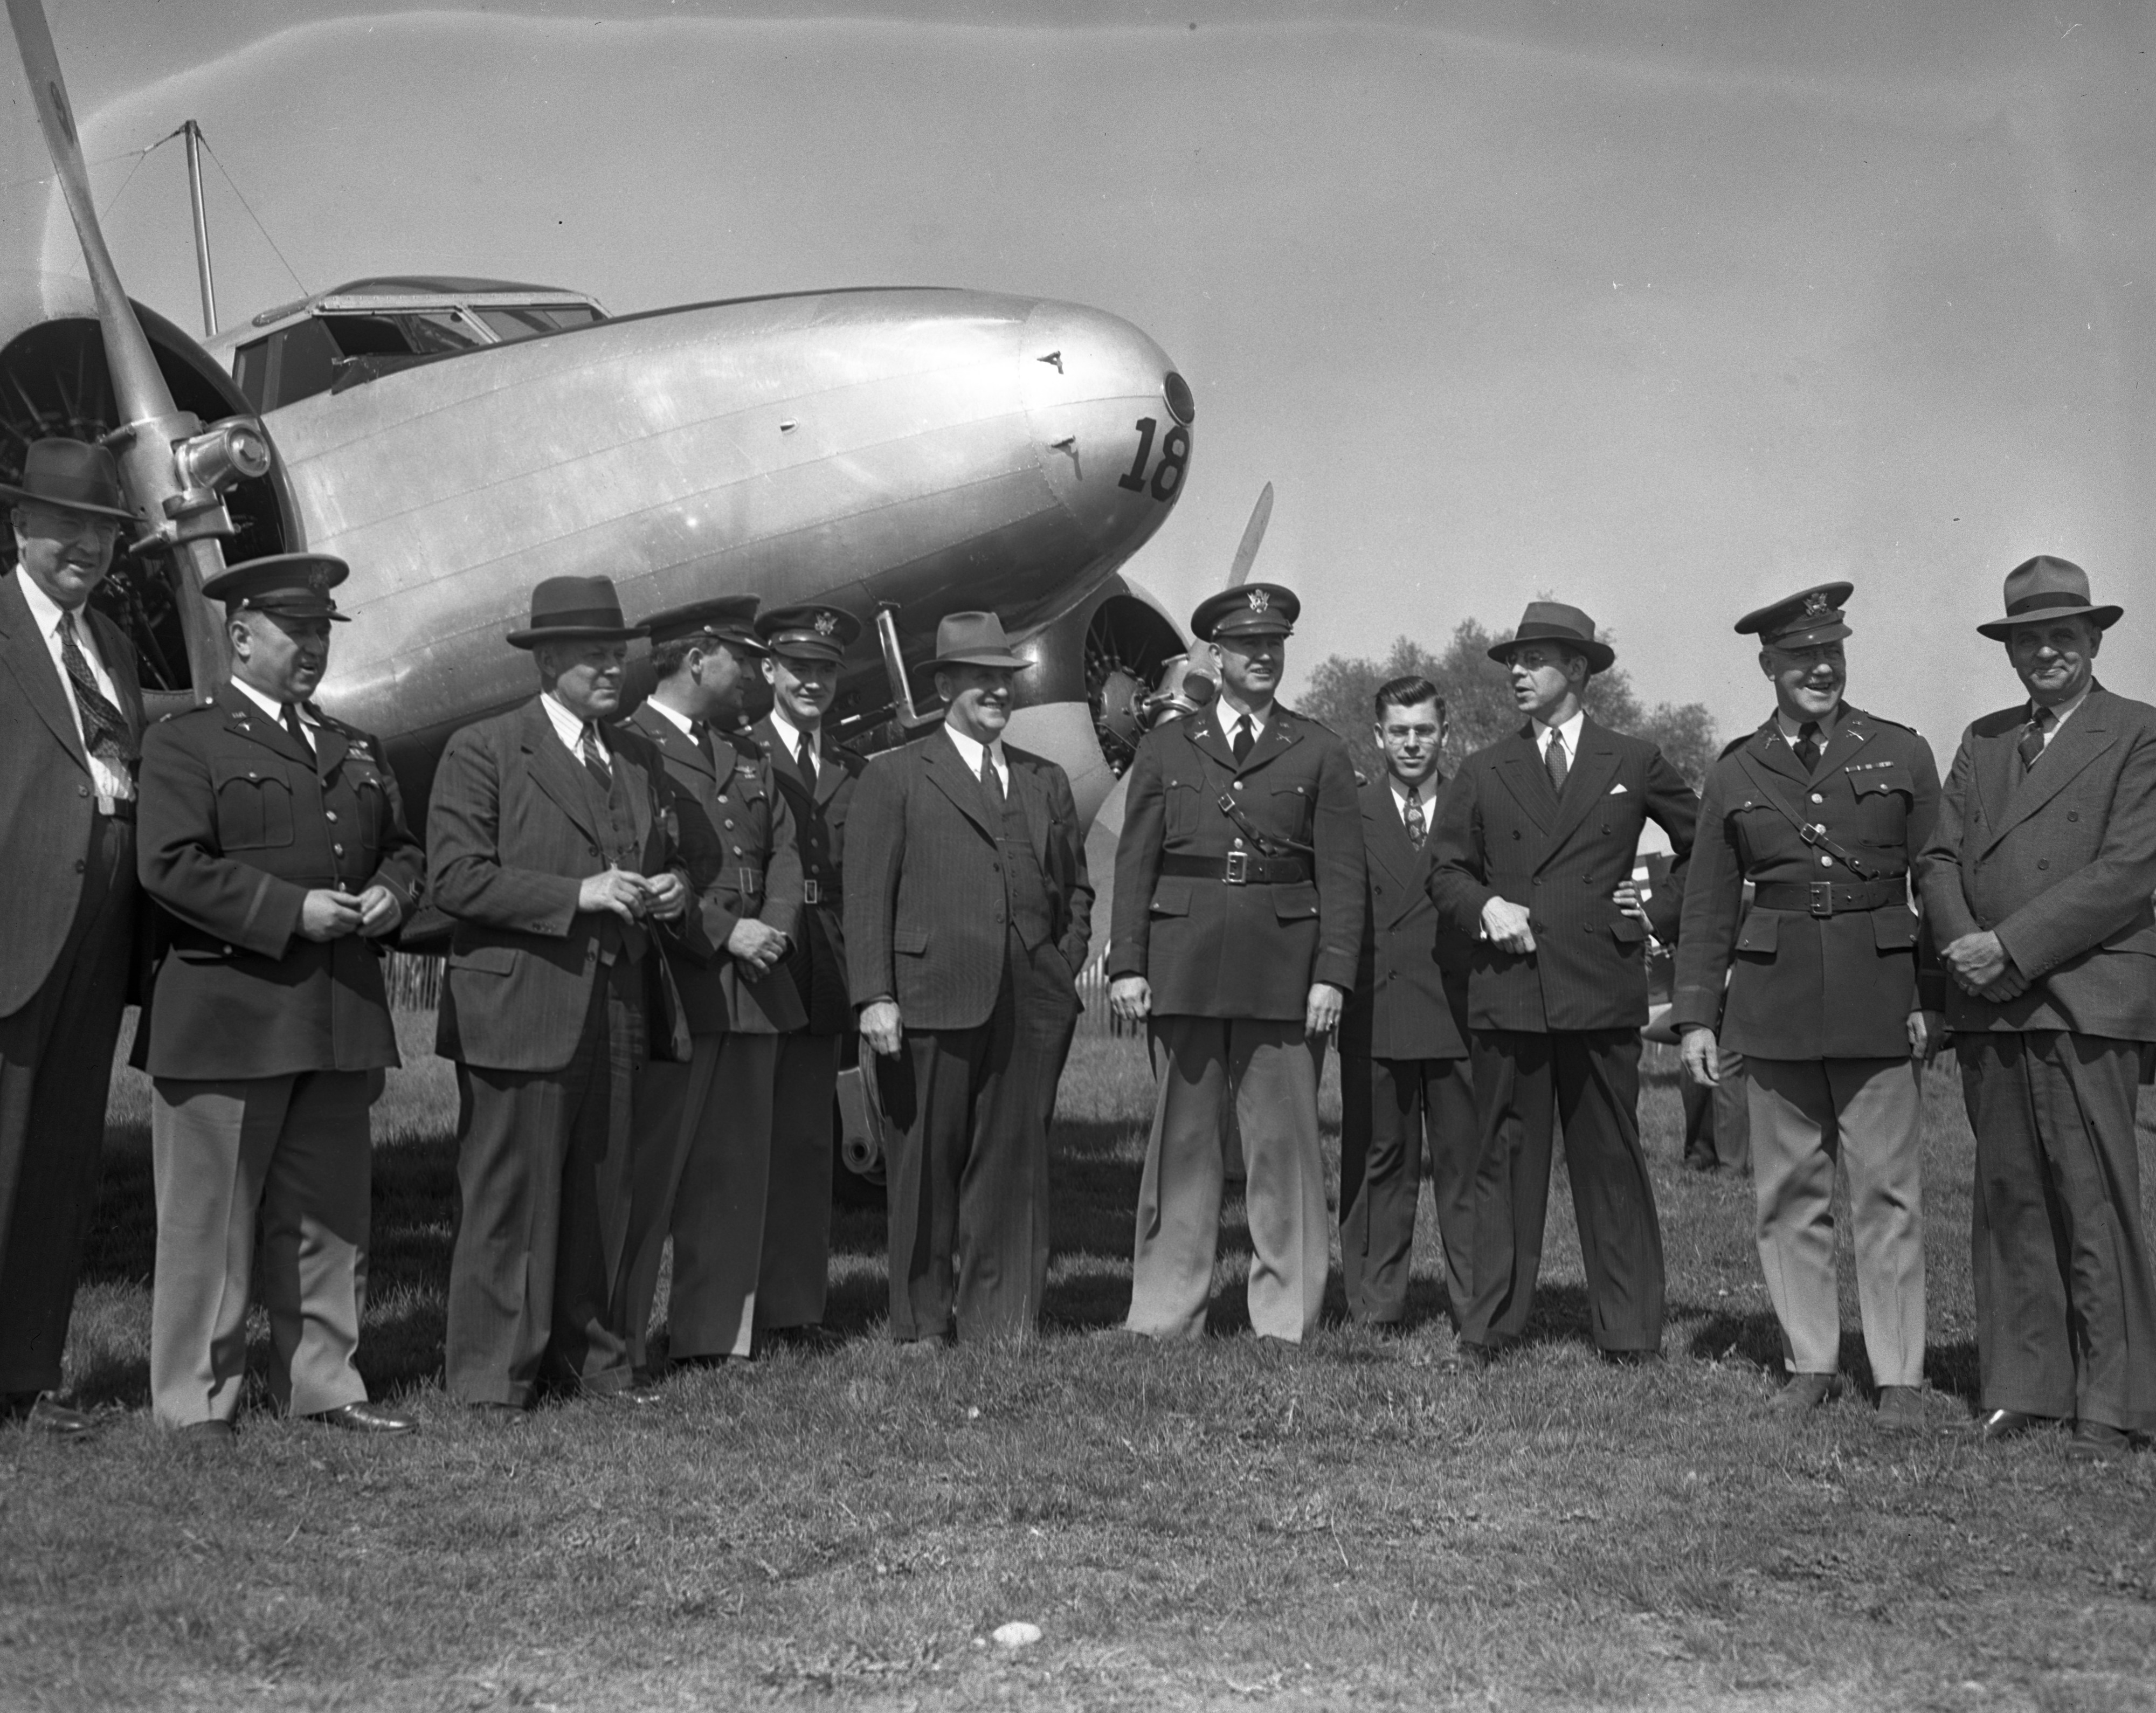 Army Planes (Airacobras) and Army Medical Officers with plane mired at Ann Arbor Airport, 1941 image